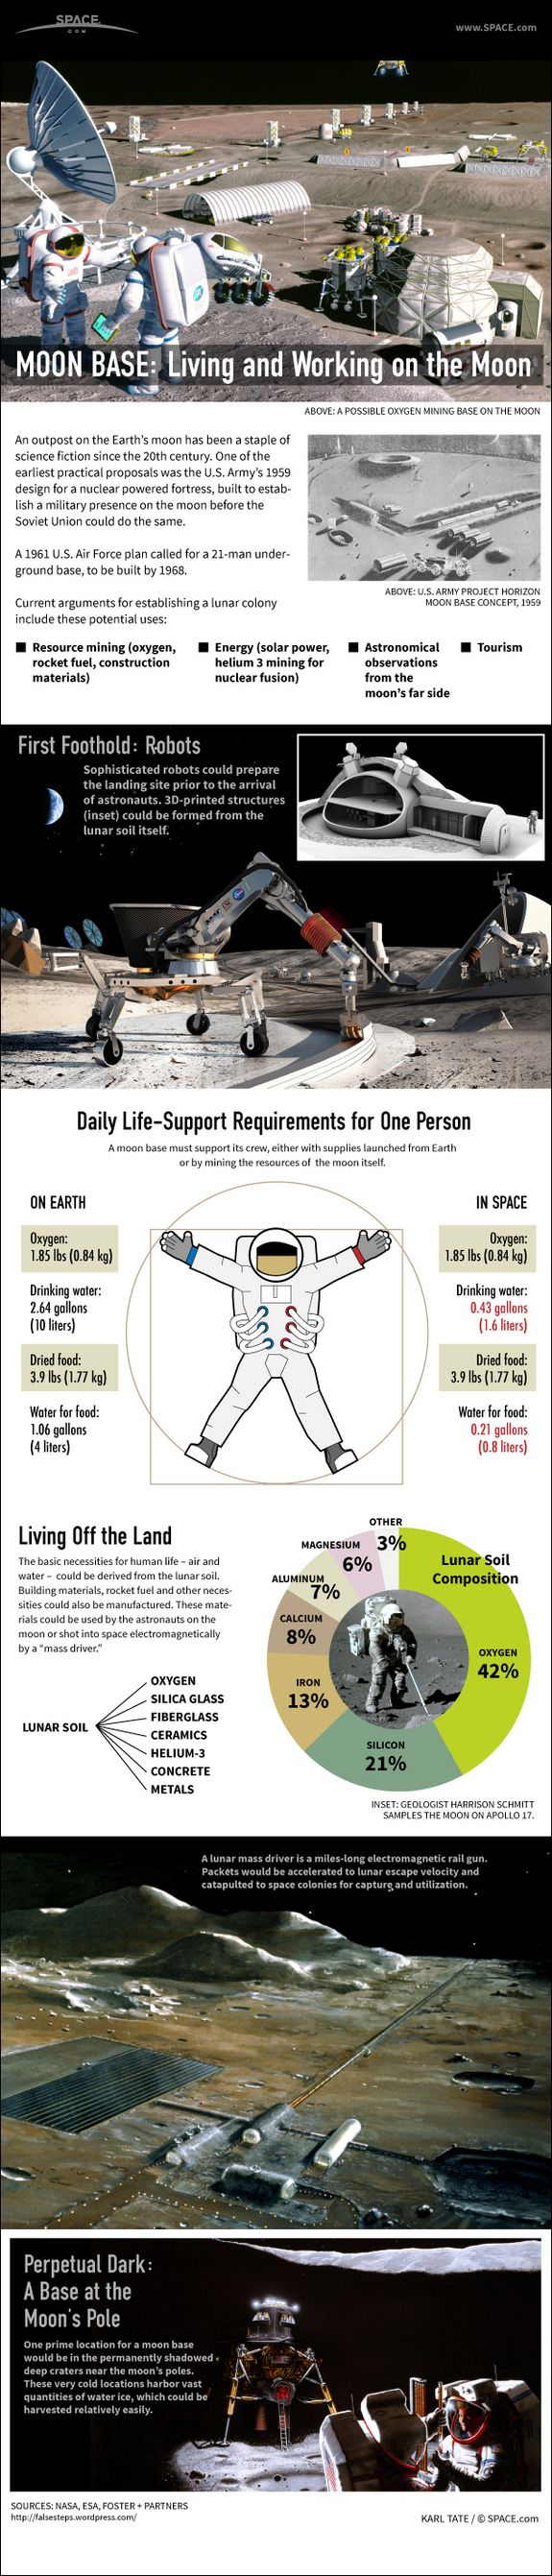 Home On the Moon: How to Build a Lunar Colony #Infographic